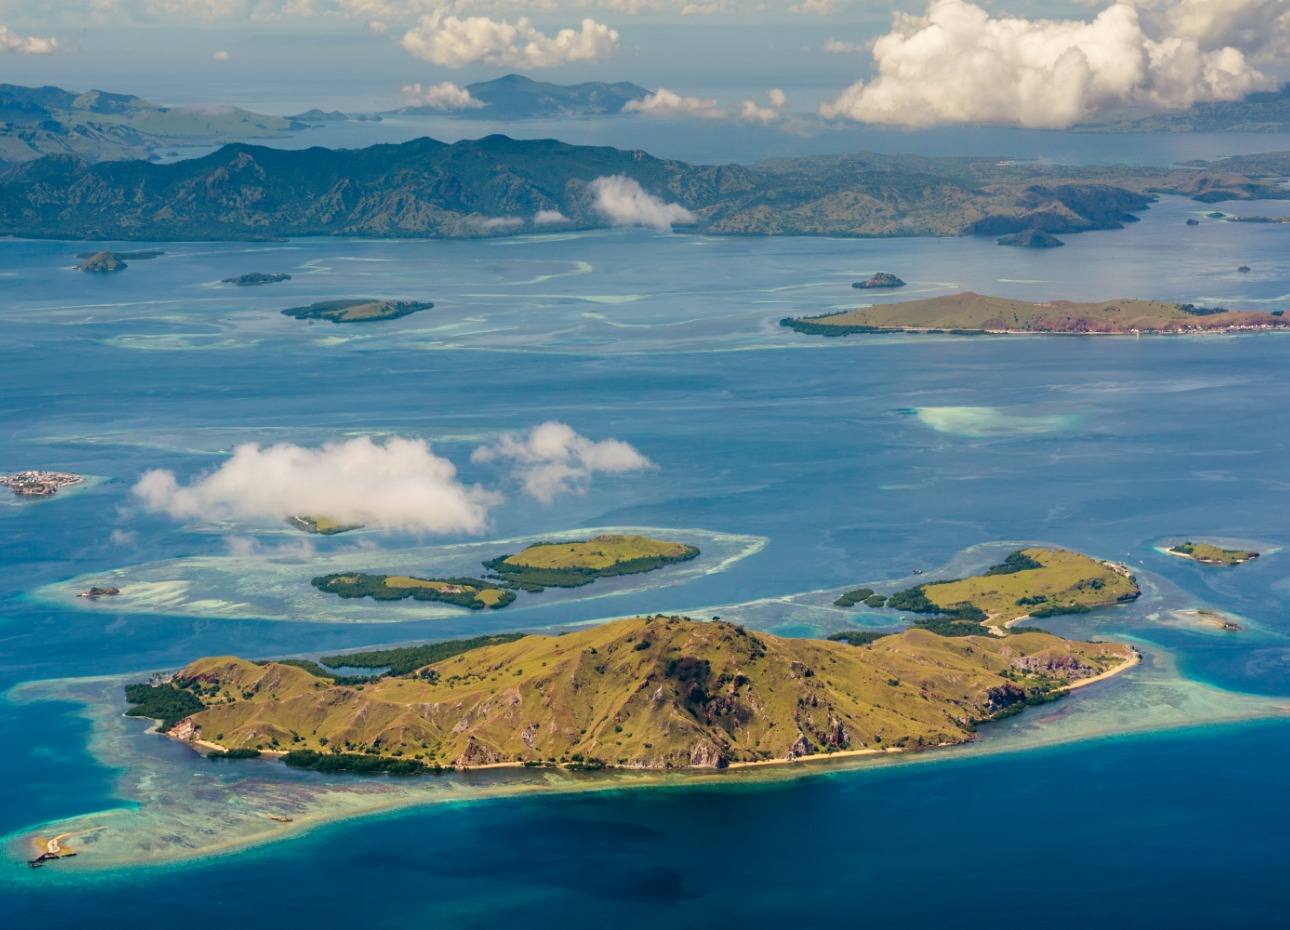 An island of Komodo National Park in Indonesia